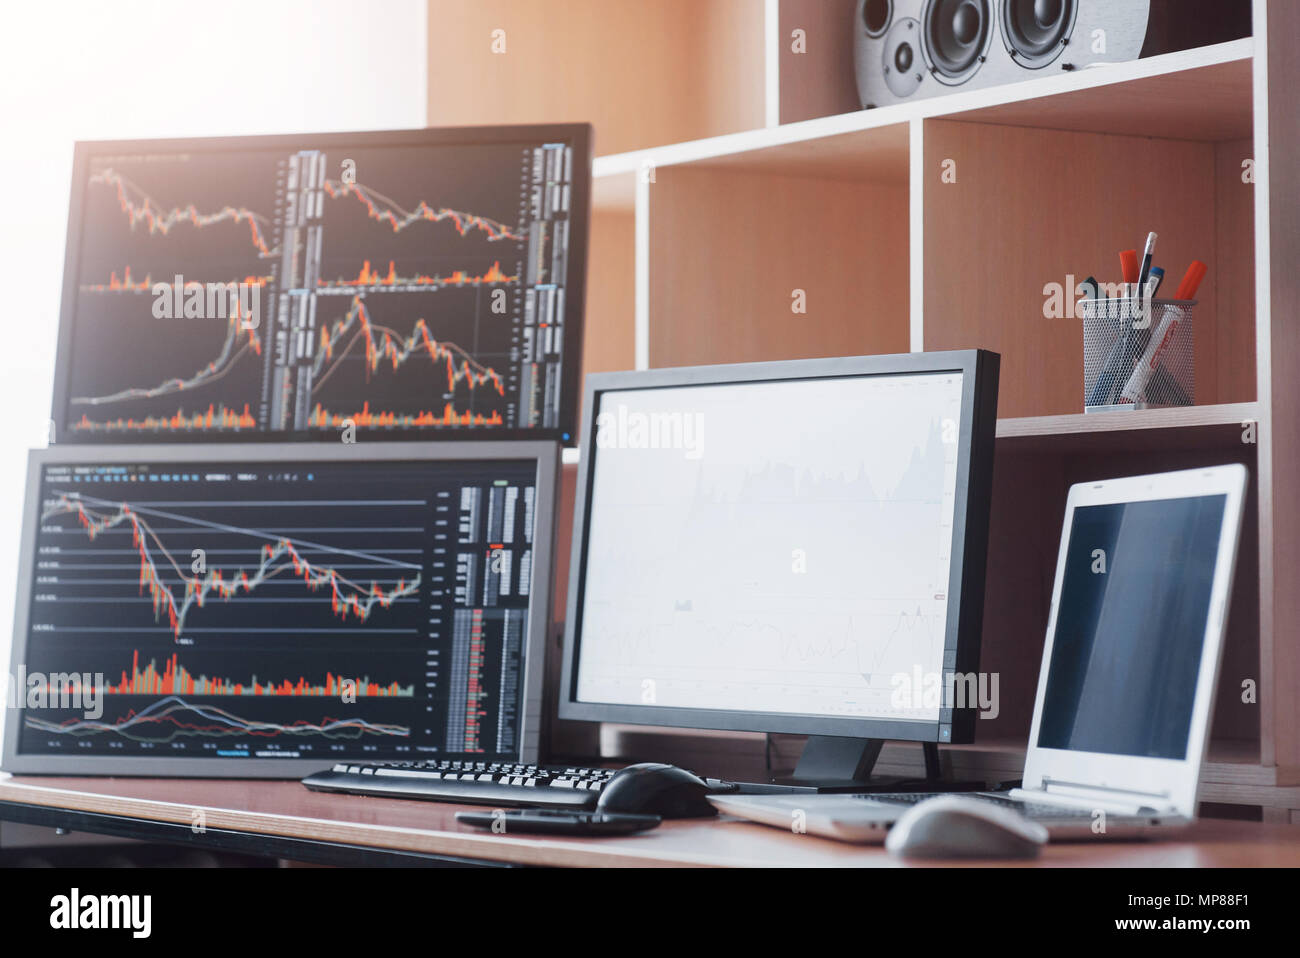 Stock exchange trader's workplace with computers - Stock Image